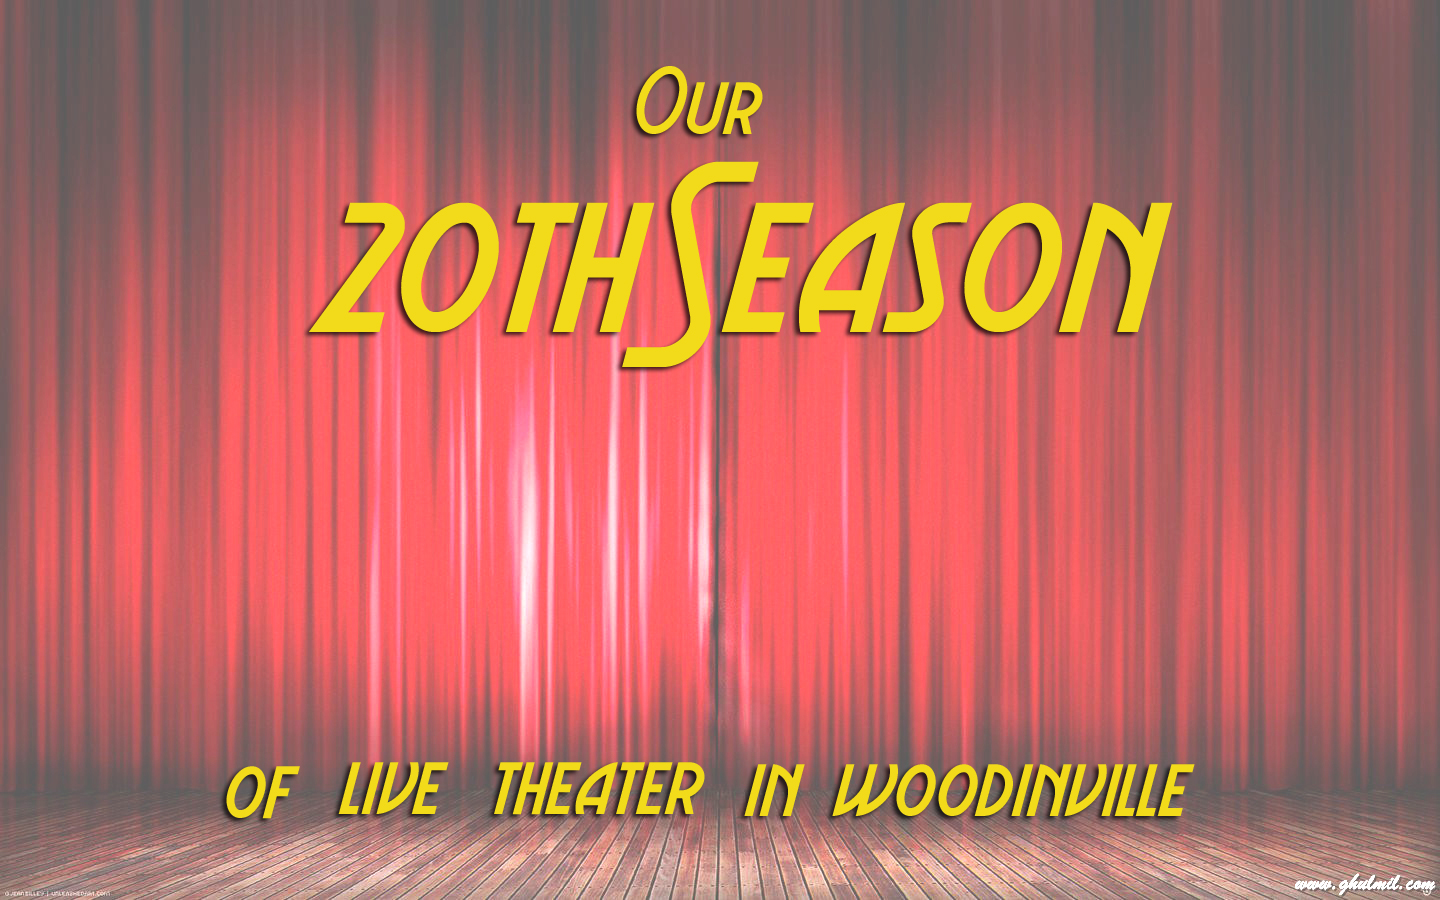 Upcoming shows in our season woodinville repertory theatre for Woodinville theater